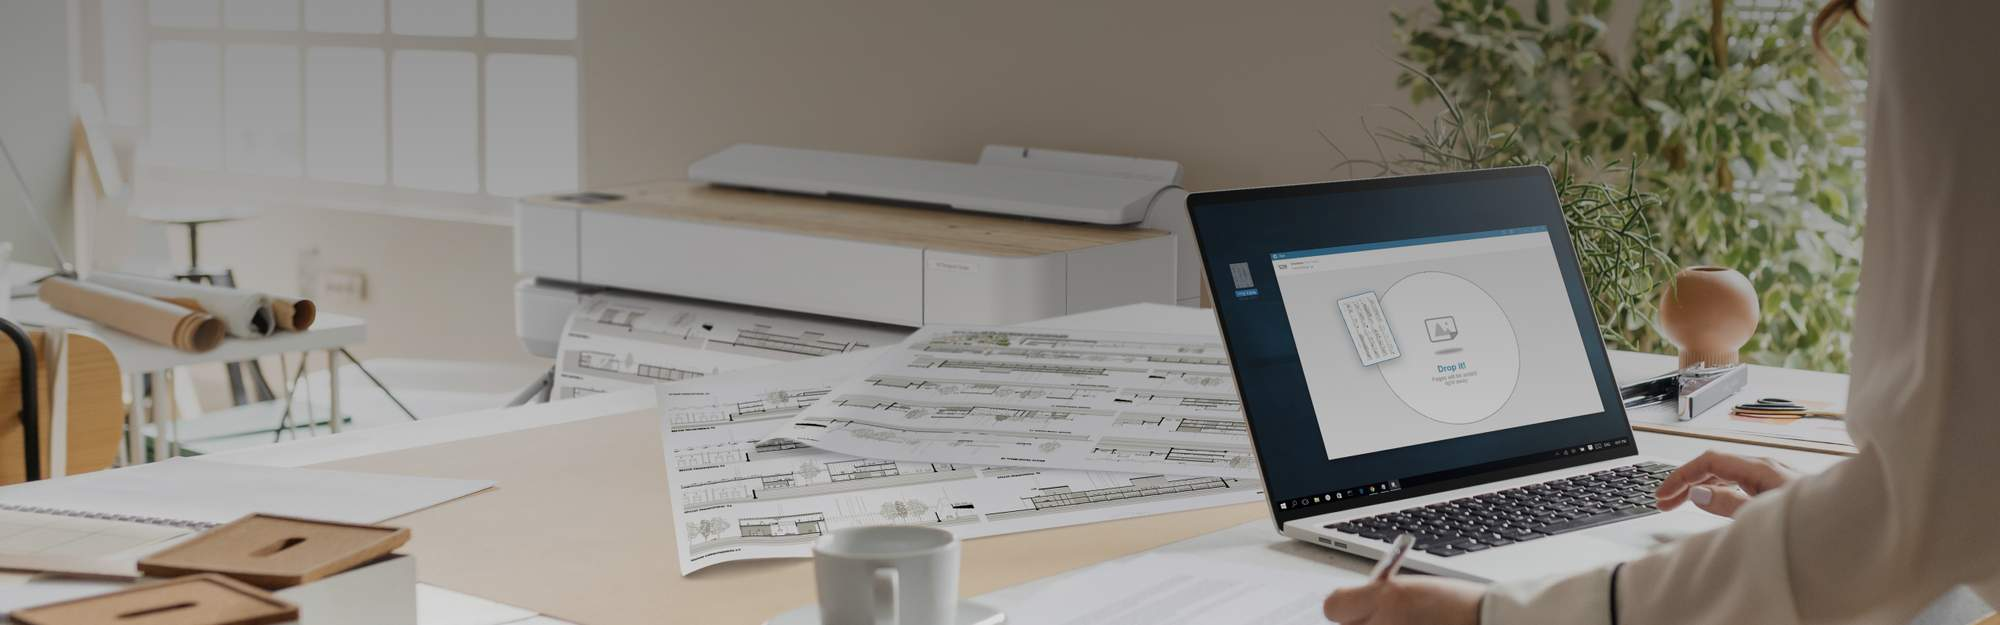 Best Large Format Printer for Architects